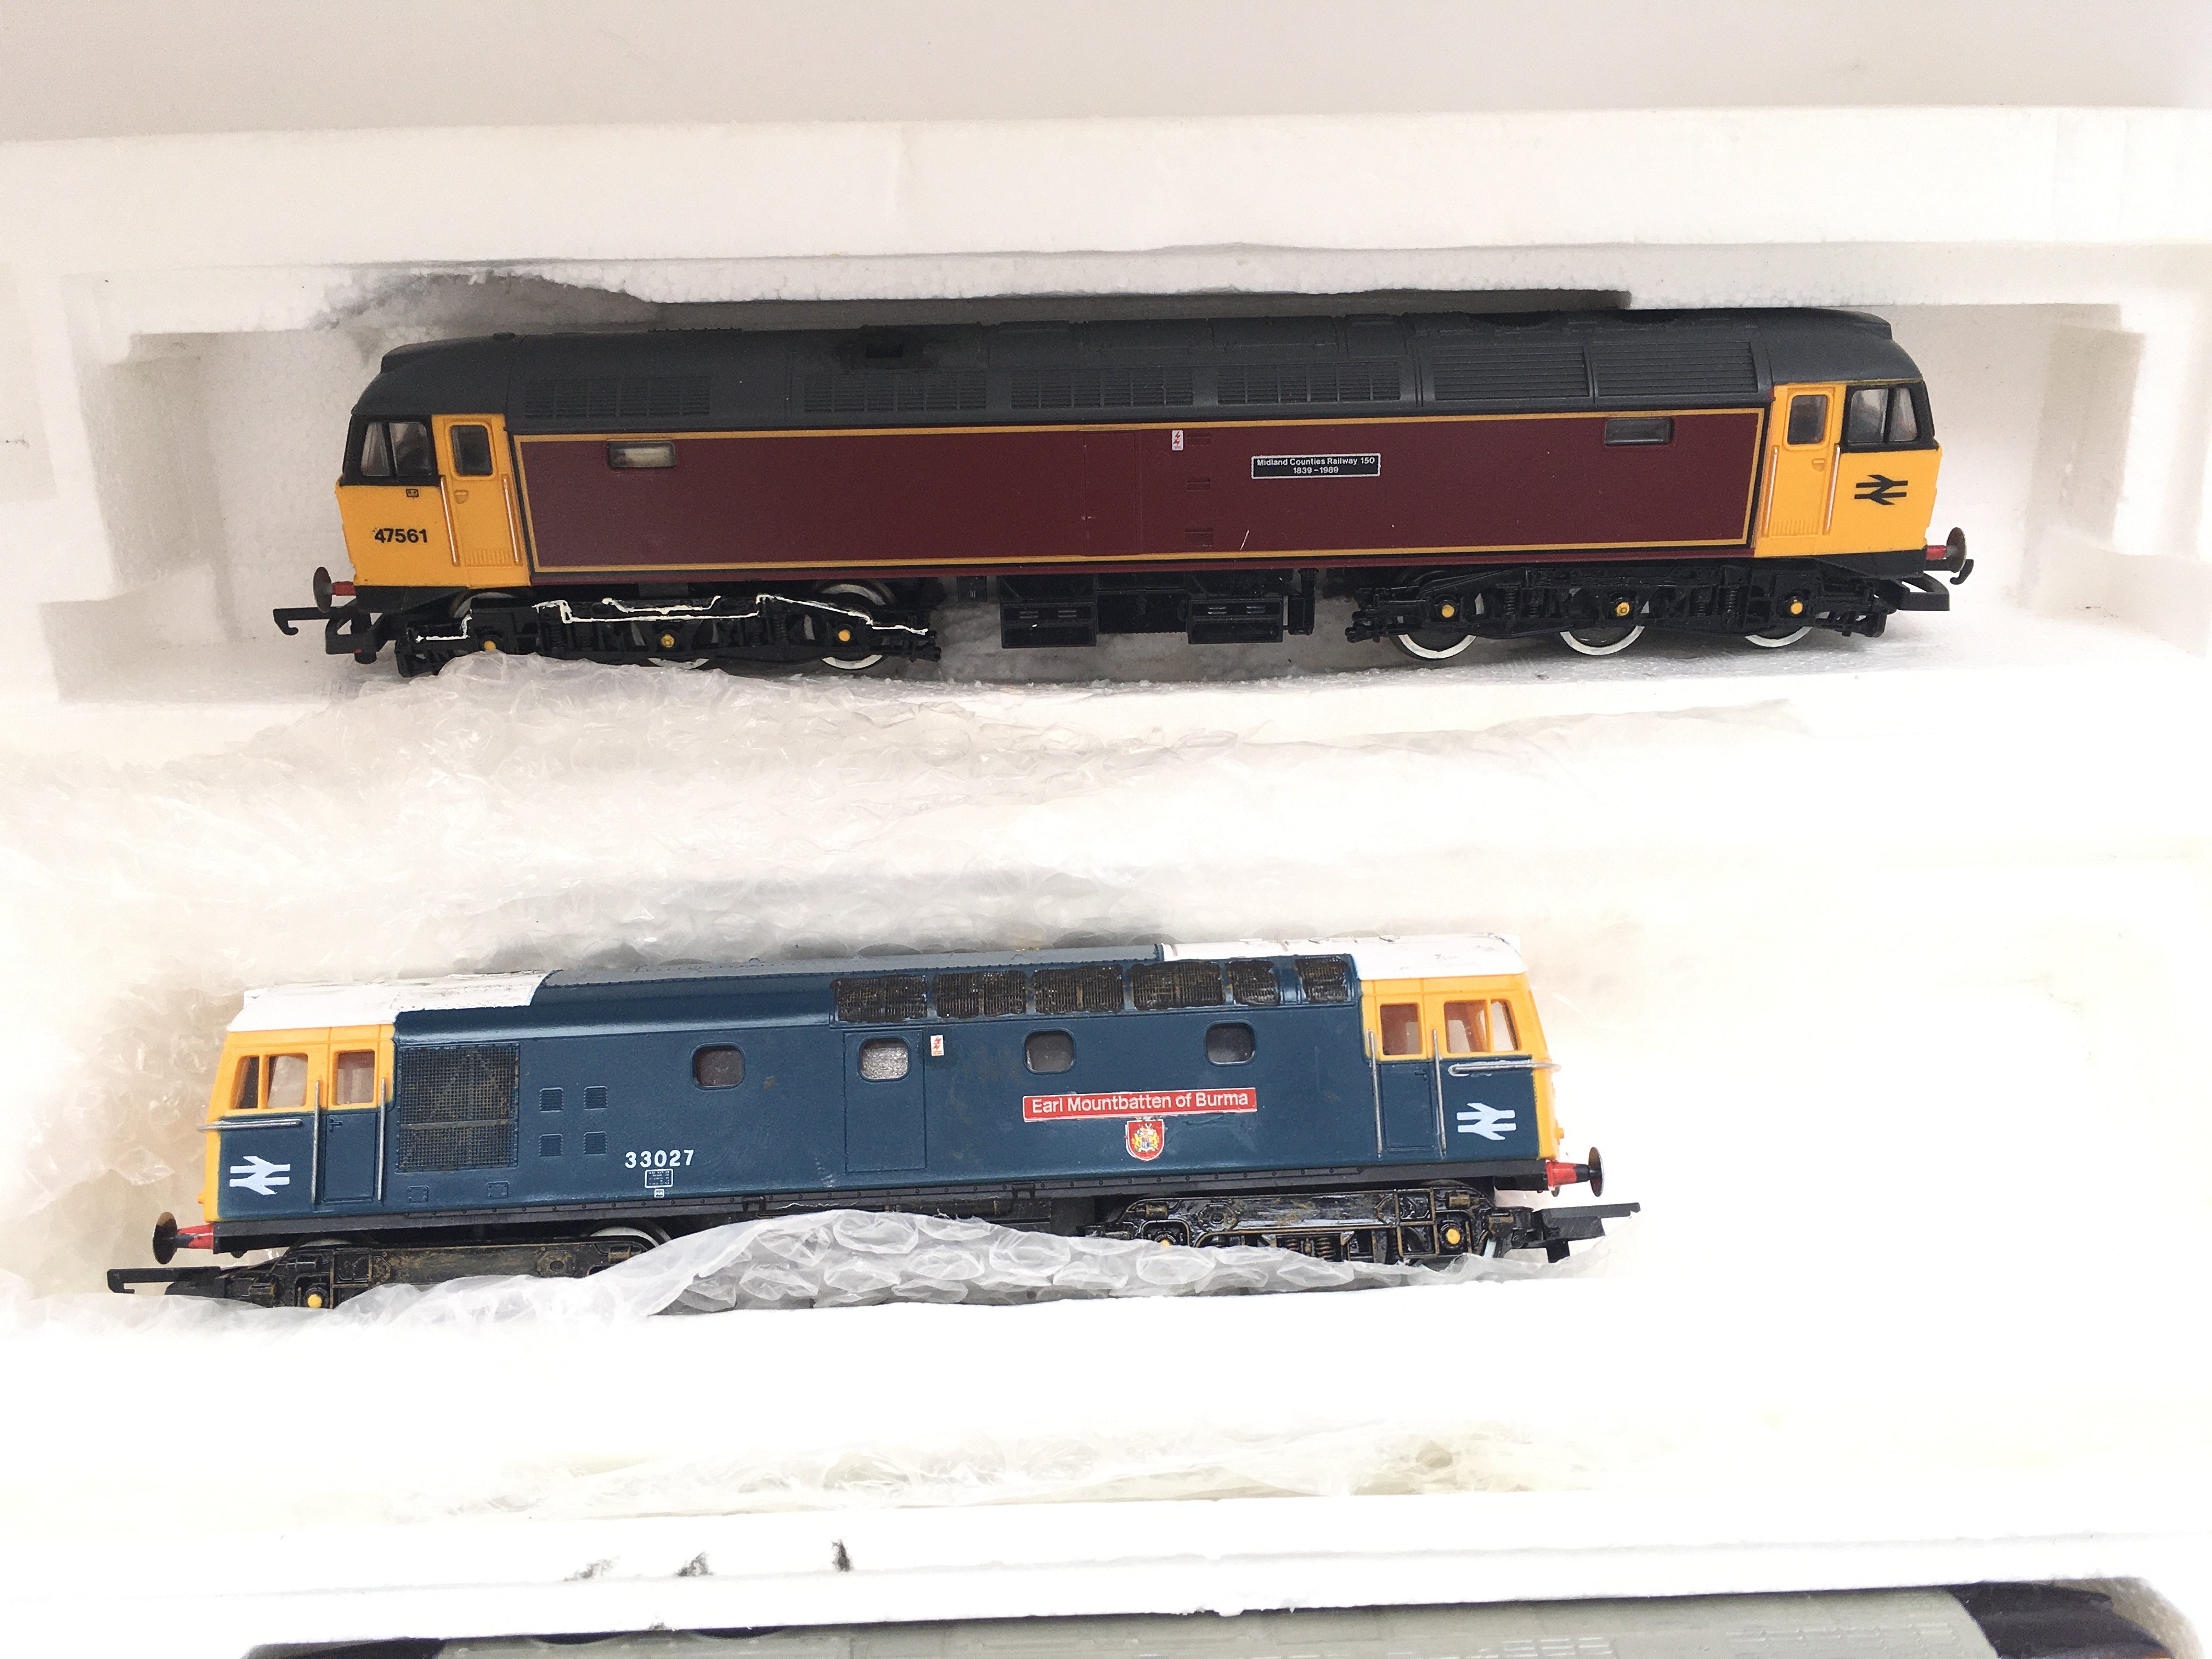 A Collection of 4 X 00 Gauge Locomotives 2 Have Be - Image 3 of 3